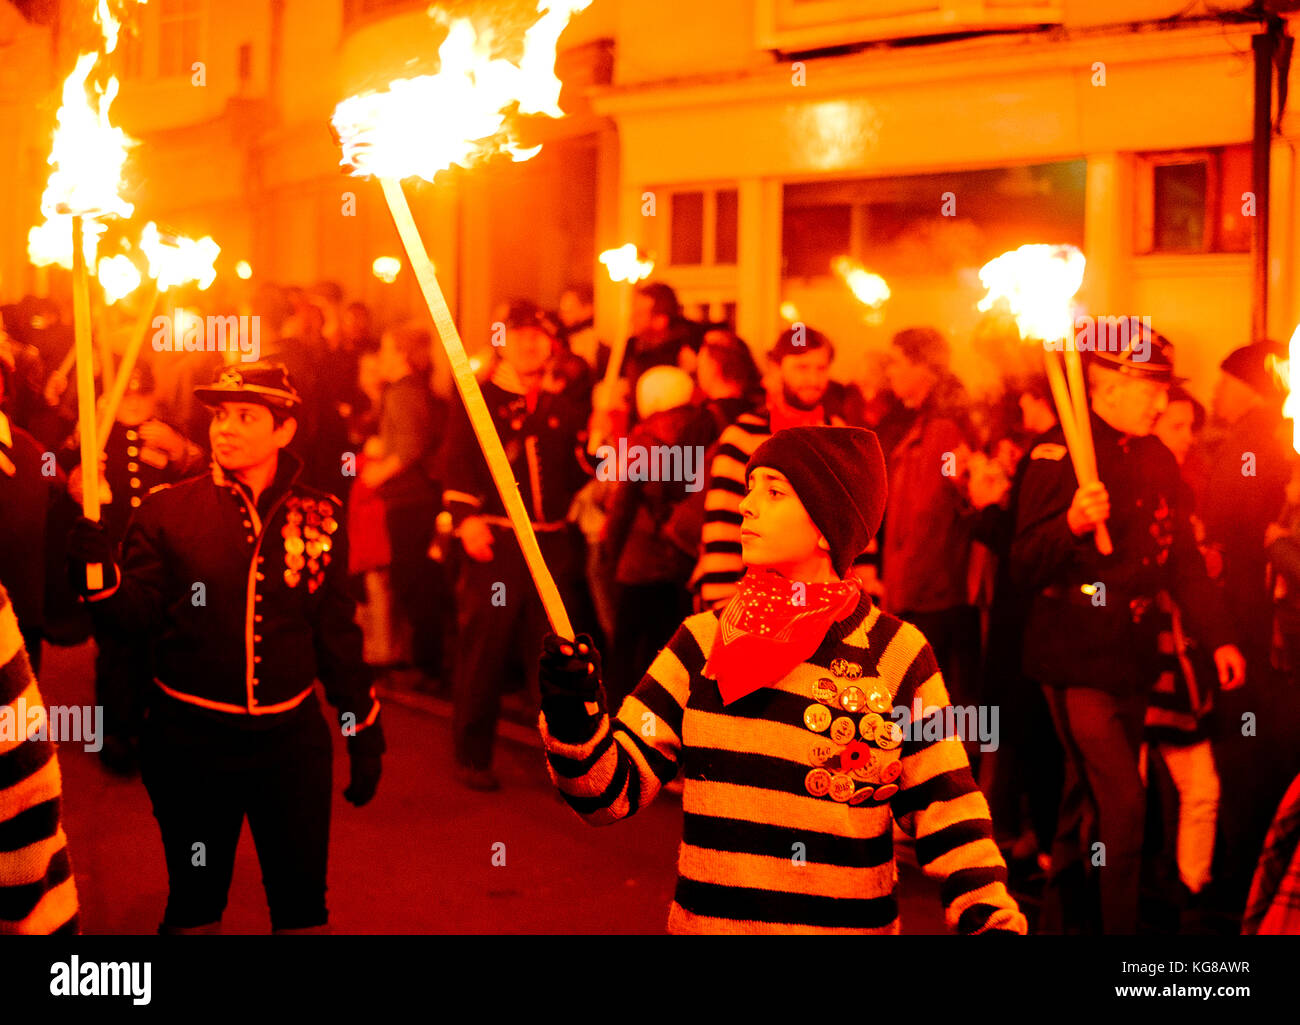 Lewes, UK - 4 November 2017: Participants from Commercial Square Bonfire Society in torchlit processions at Lewes - Stock Image